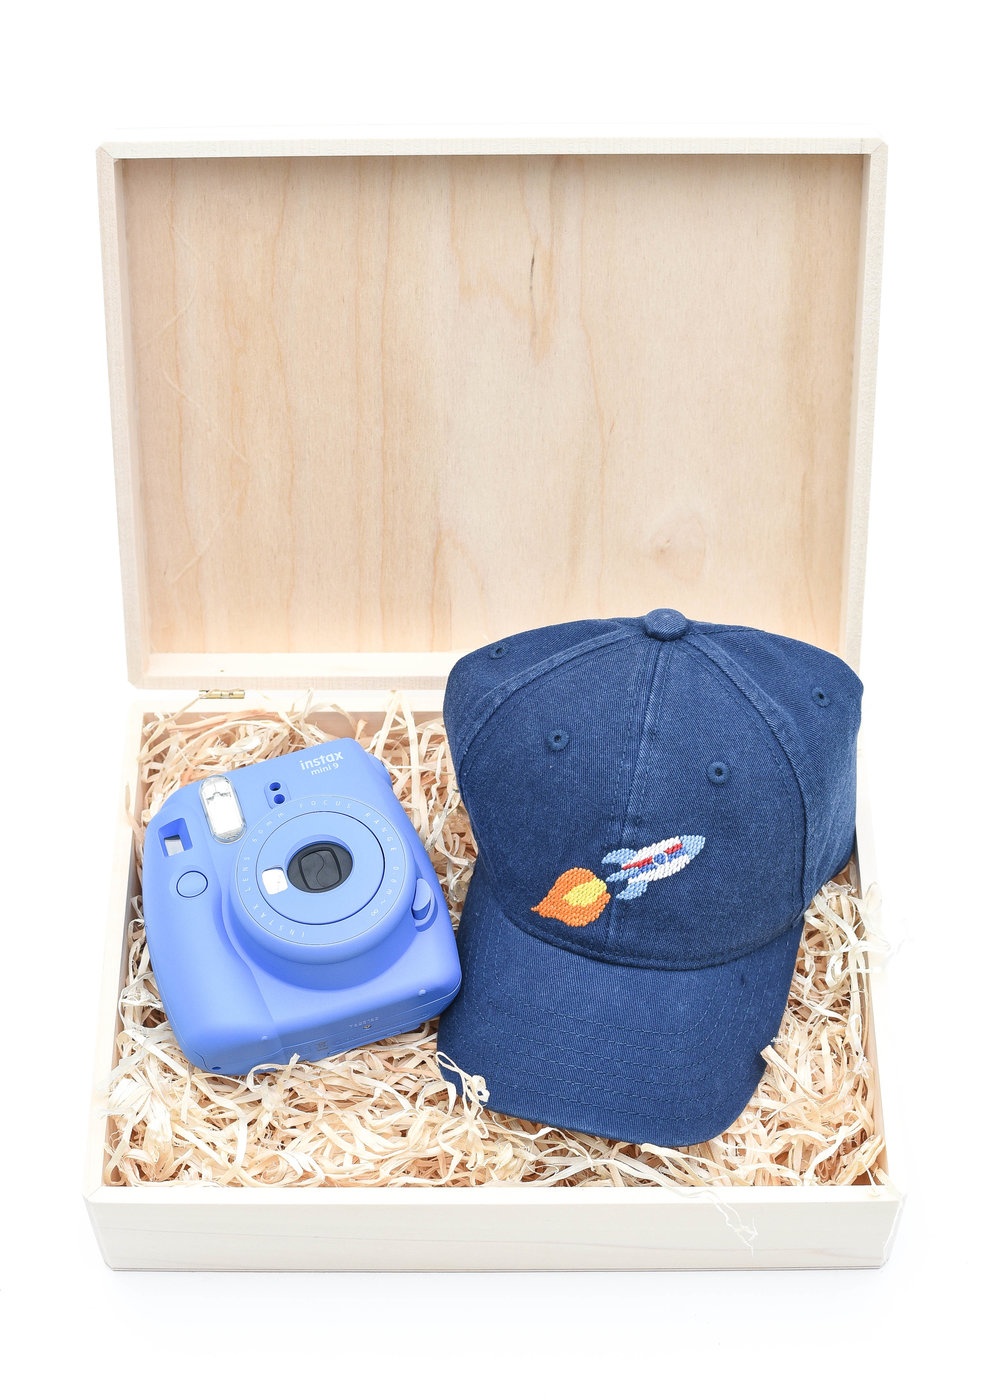 Boys Holiday Gift, Instax Mini 9 Instant Camera, Harding Lane Kids Hat, Holiday Gift Guide for kids